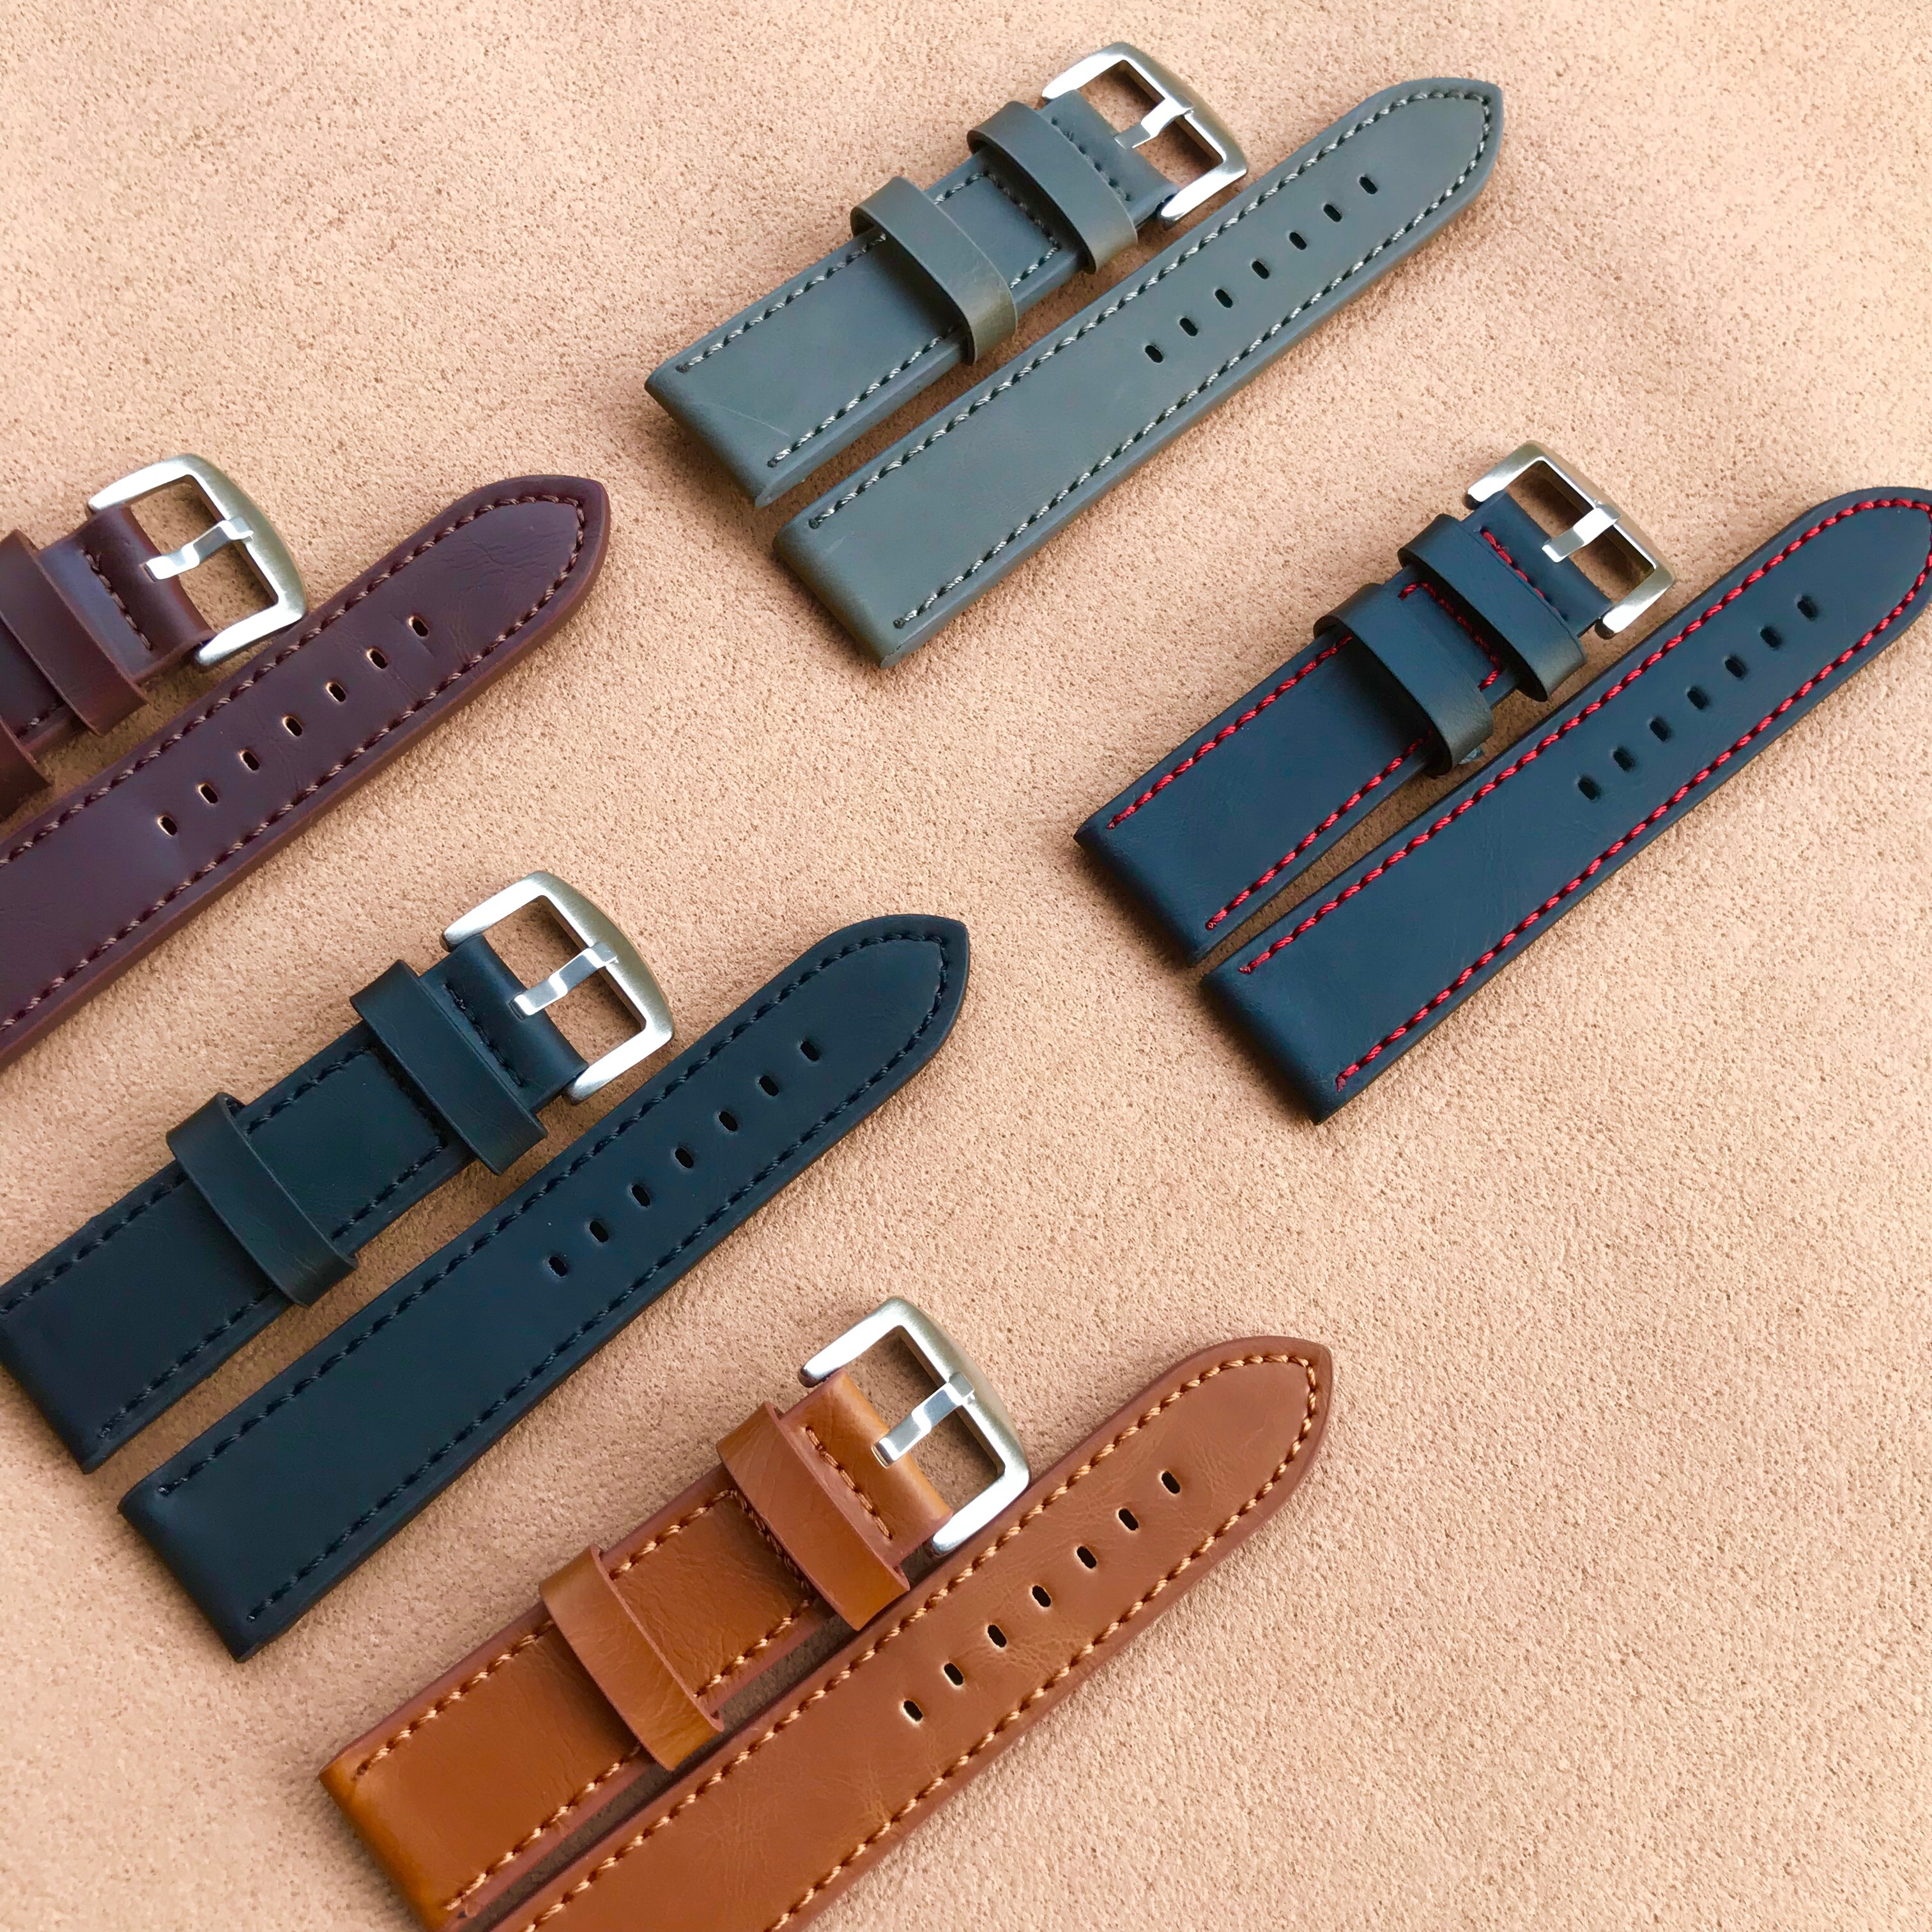 Fashion Vintage Watch Band Strap Sport PU Leather Watchband Stainless Steel Buckle Clasp Watch Acces